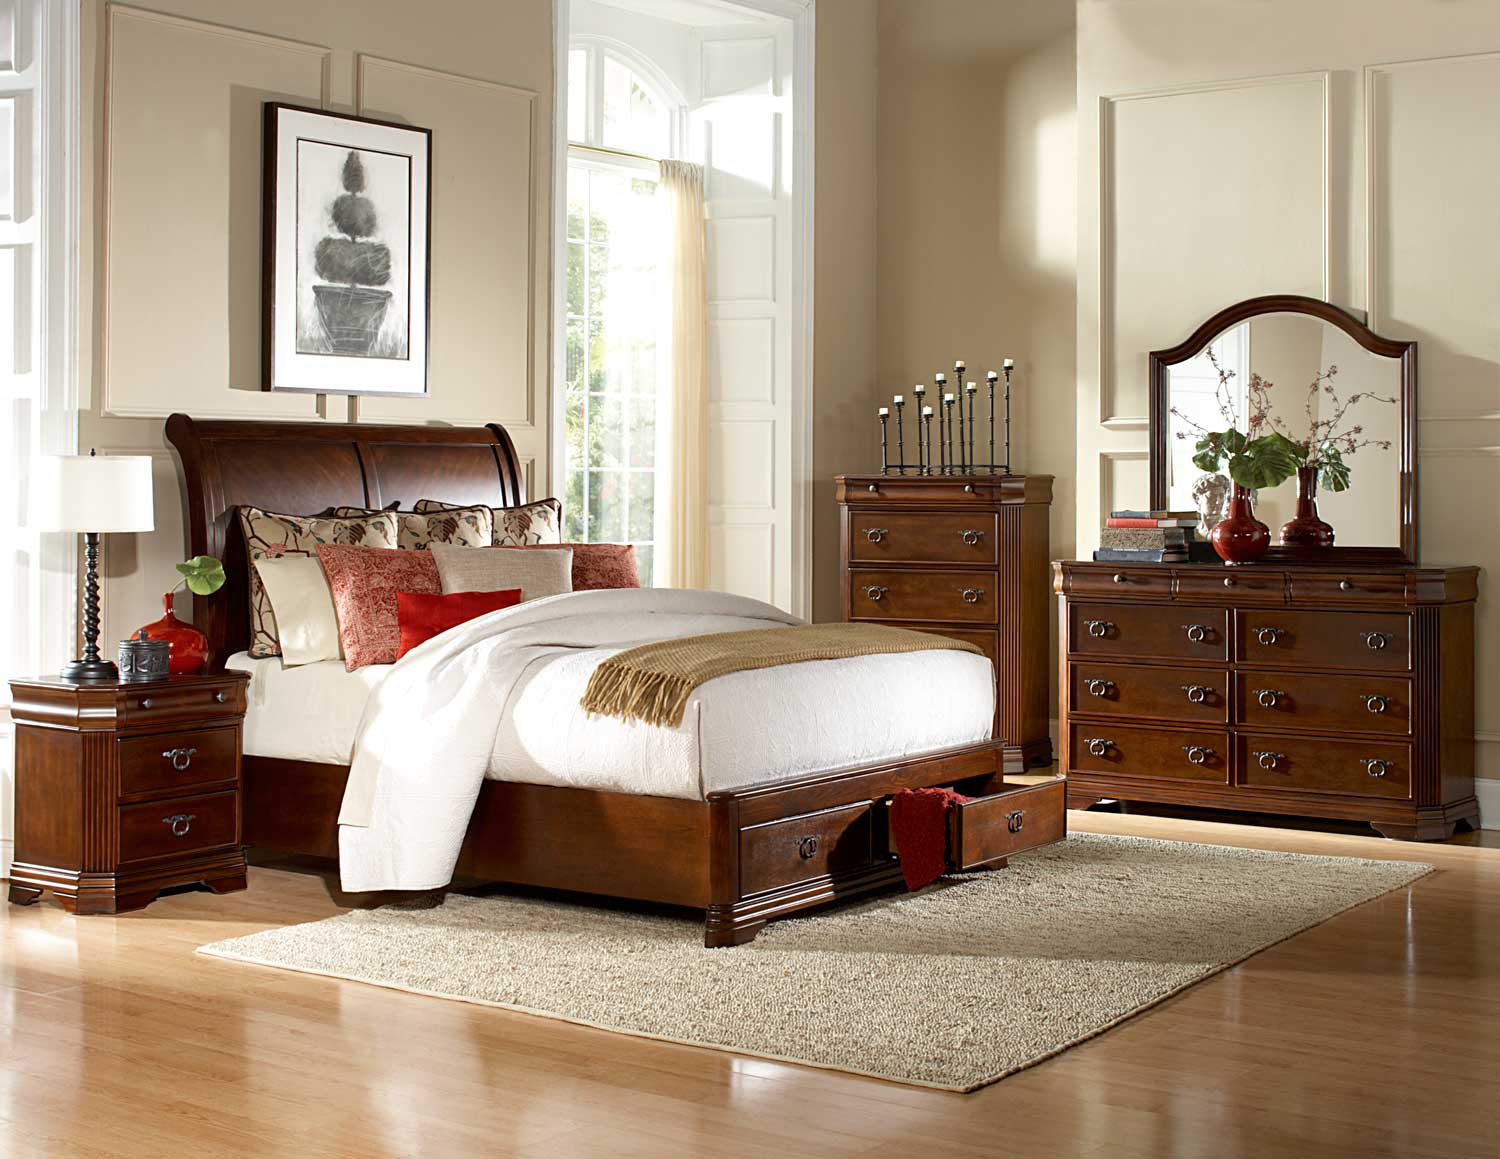 Homelegance Karla Platform Bedroom Set - Brown Cherry